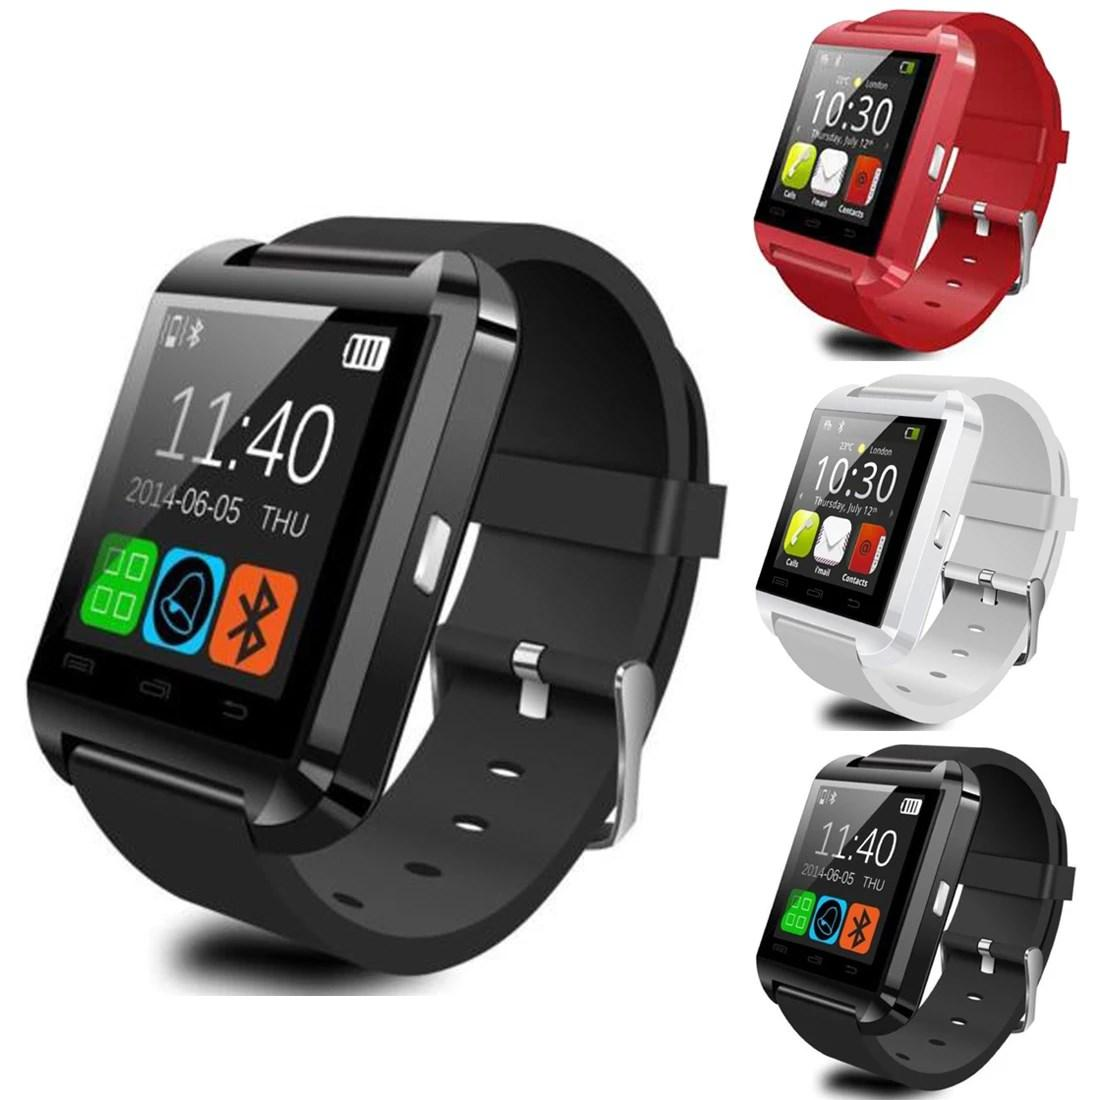 2020 New Stylish U8 Bluetooth Smart Watch For iPhone IOS Android Watches Wear Clock Wearable Device Smartwatch montre intelligente